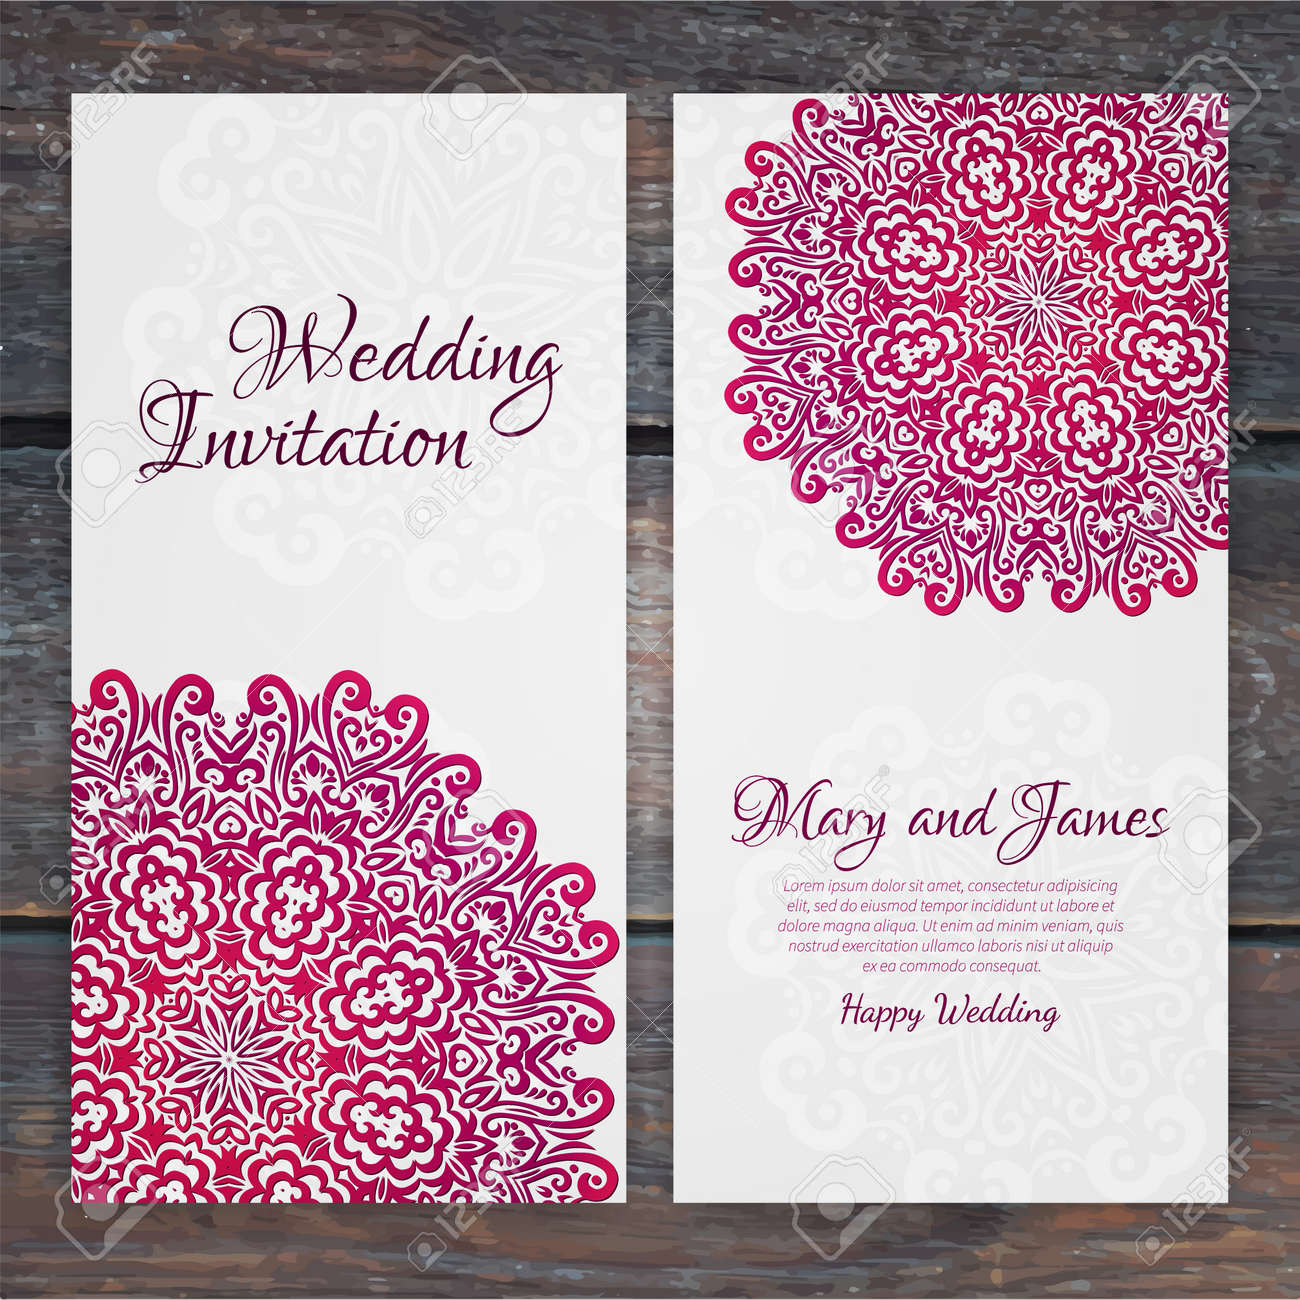 Lacy vector wedding card template romantic vintage wedding lacy vector wedding card template romantic vintage wedding invitation abstract circle floral ornament pronofoot35fo Gallery